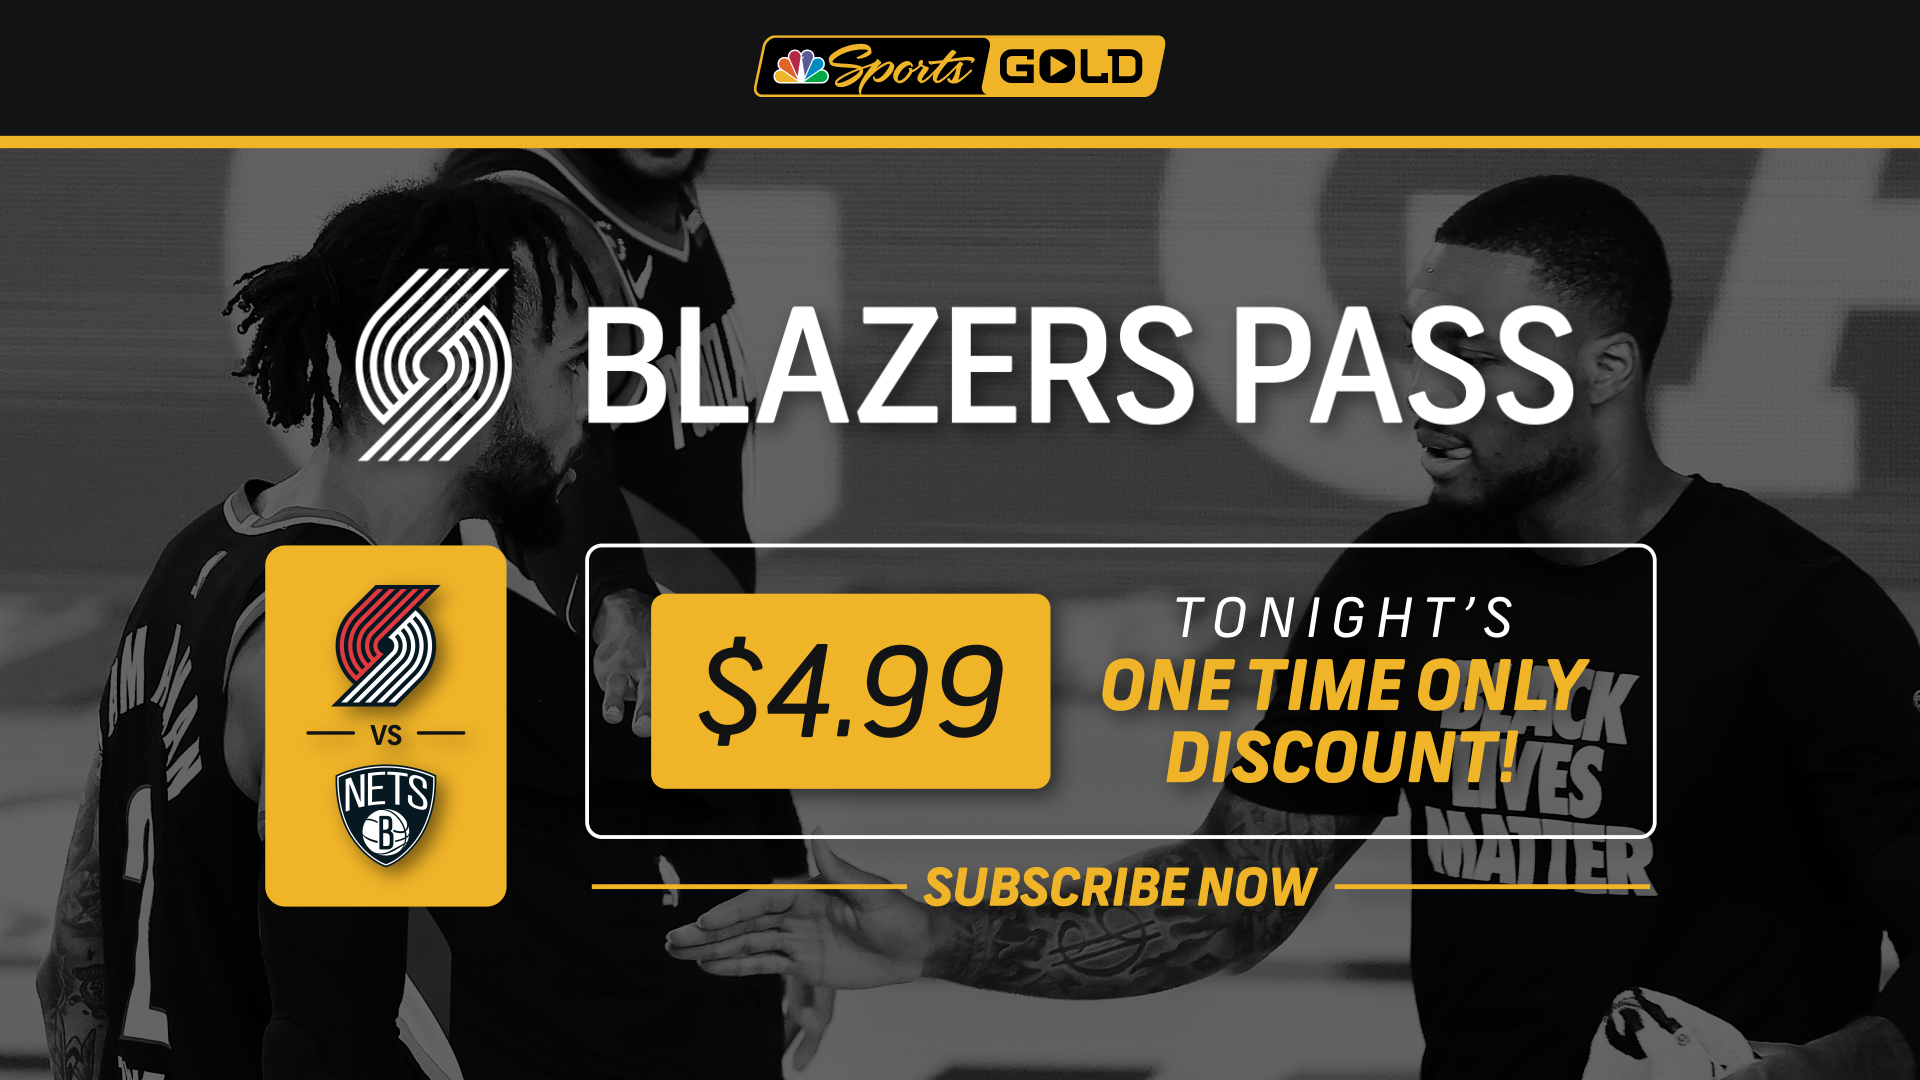 Trail Blazers Vs Nets Available For 4 99 Via Blazers Pass